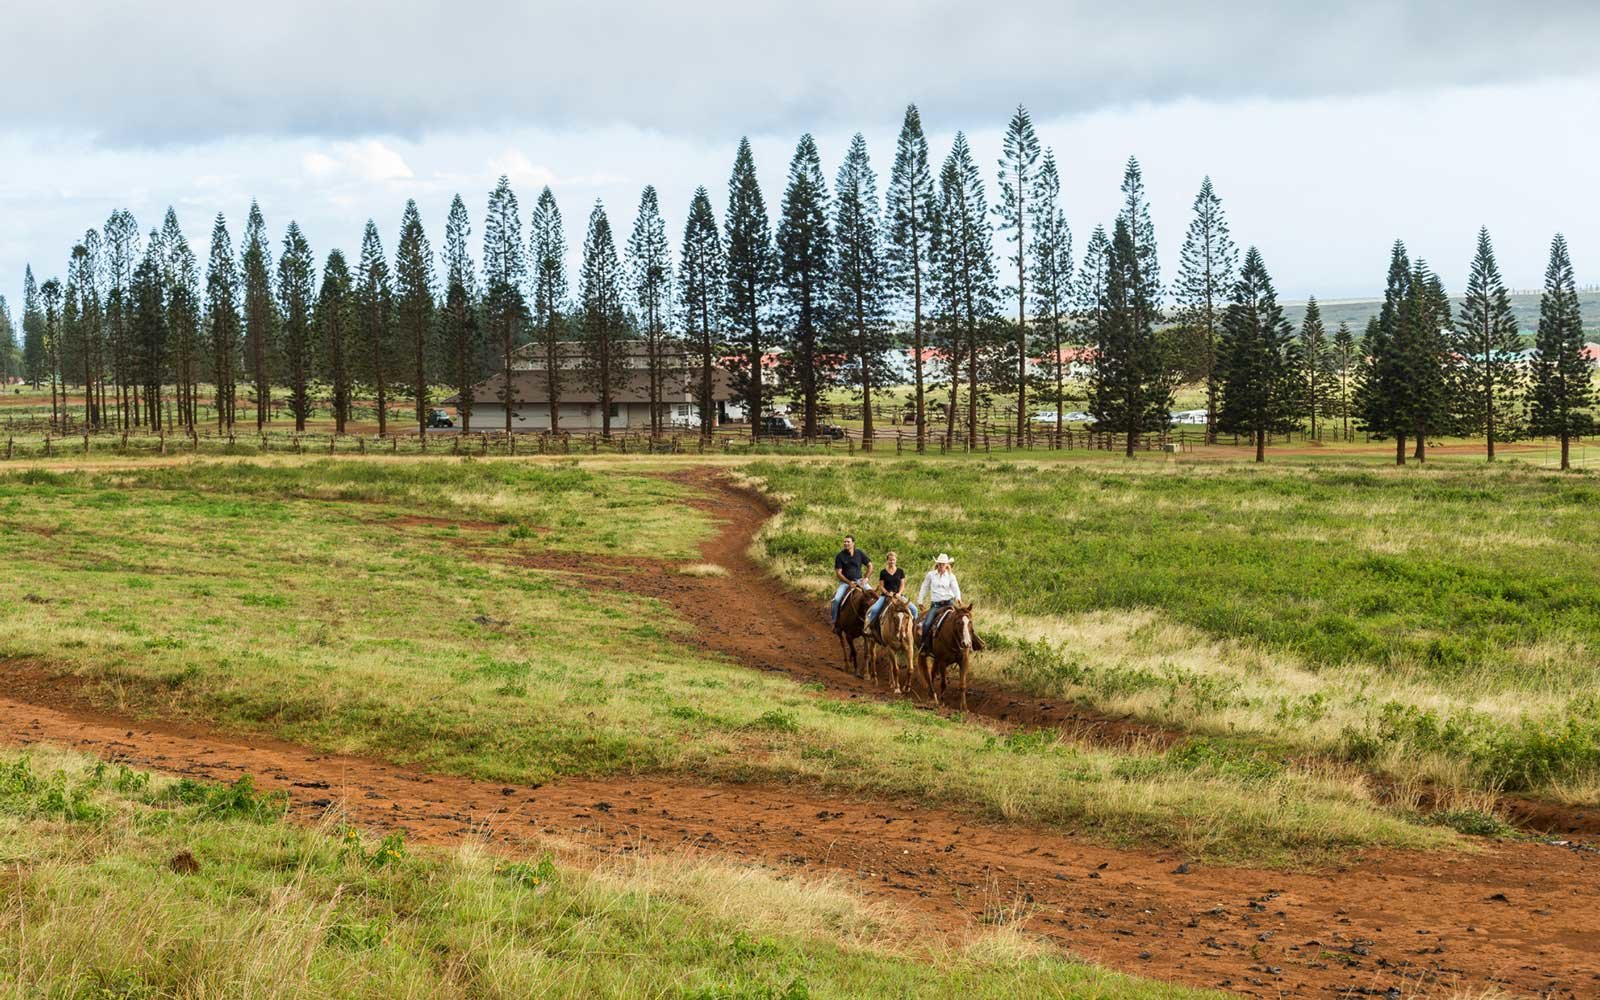 Horseback riding in Lanai, Hawaii